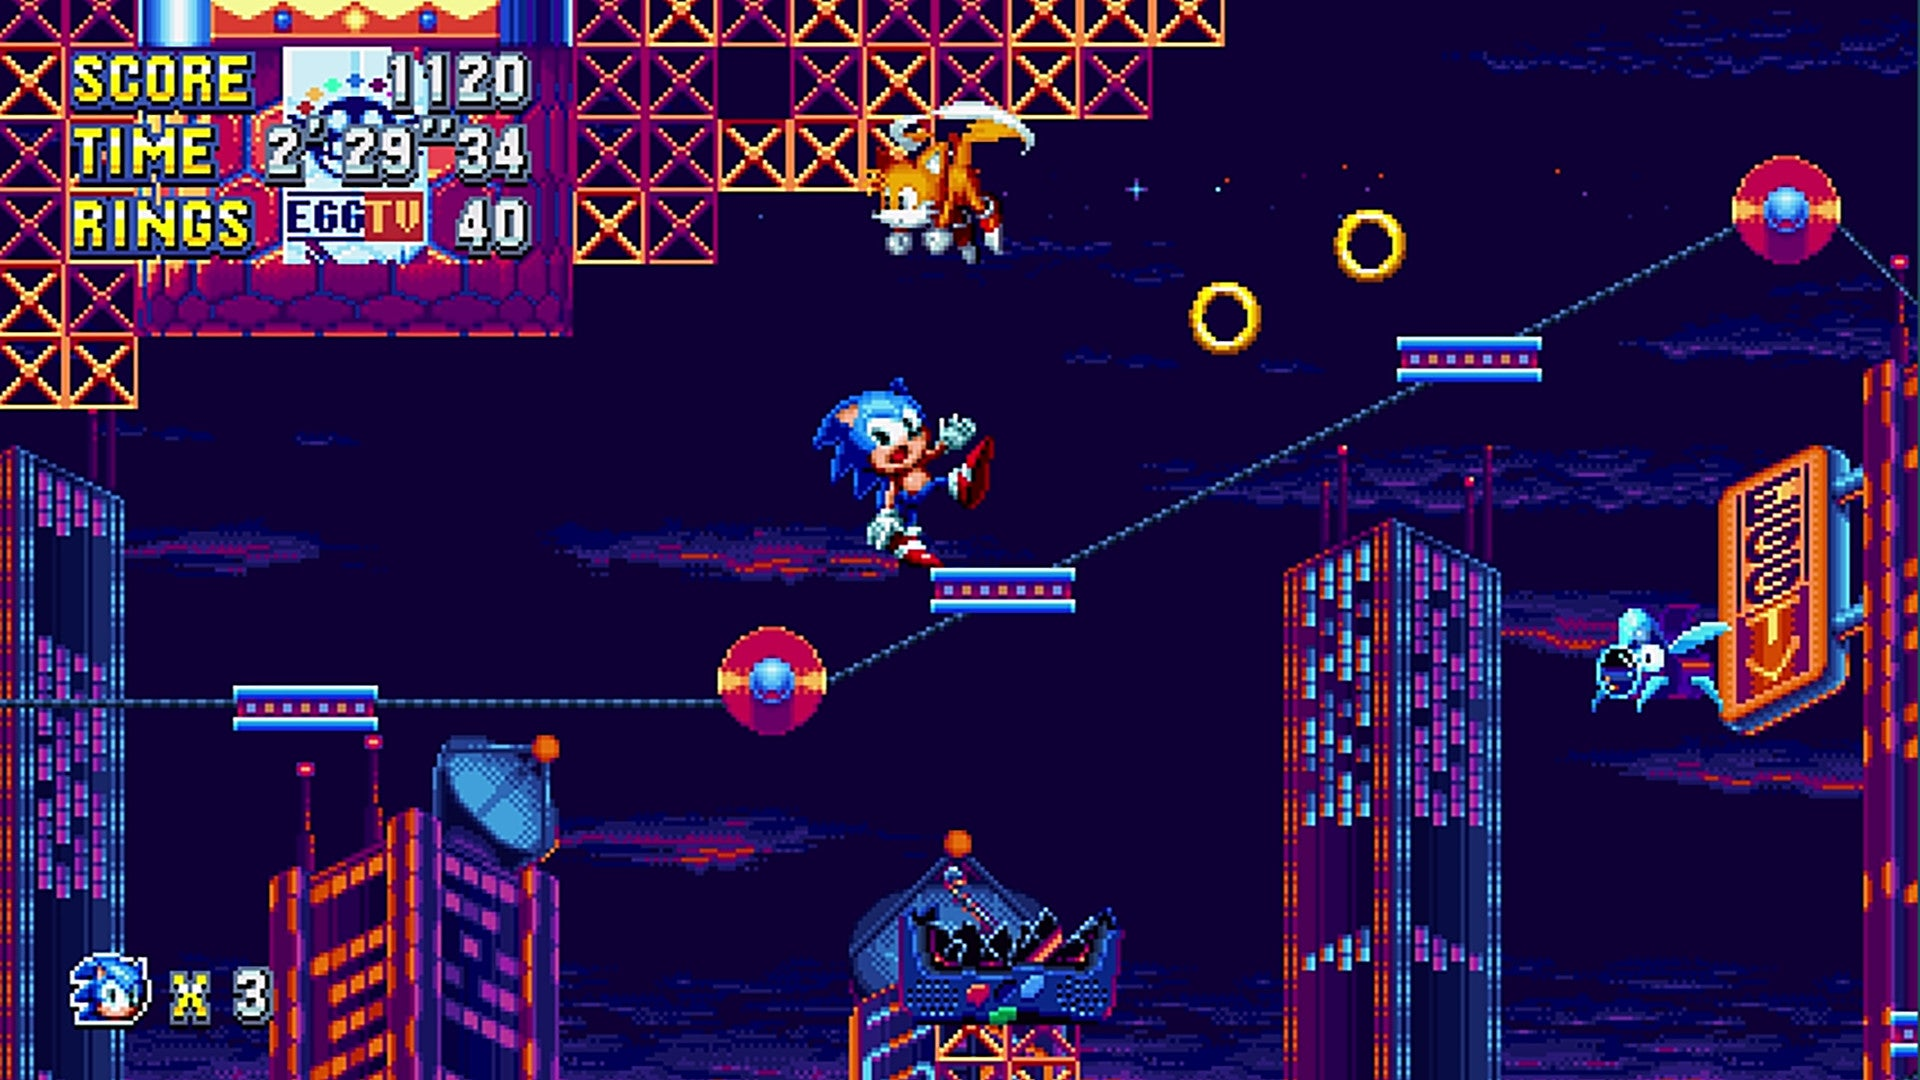 Sonic Mania And Borderlands: The Handsome Collection Are June's PlayStation Plus Games